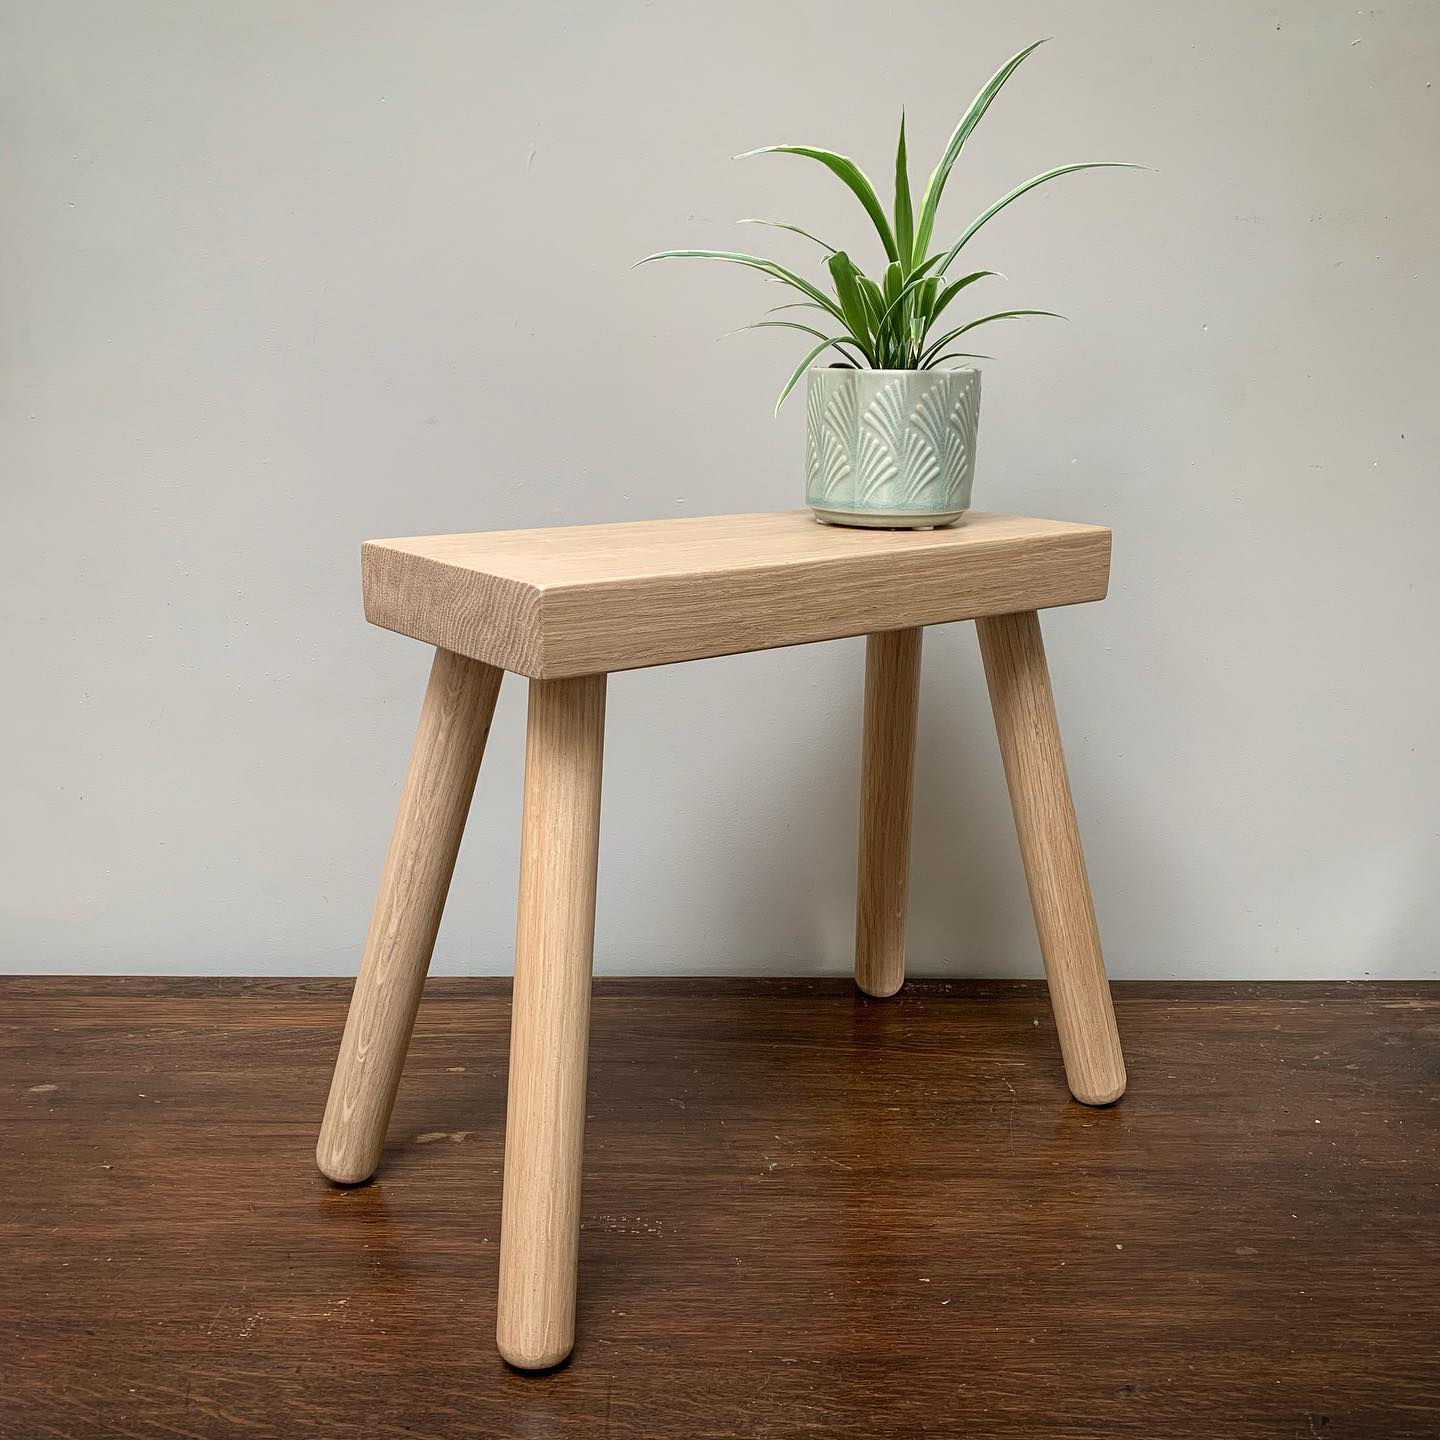 NOW AVAILABLE ONLINE!Our Solid Oak Milking Stools are now available to purchase through our website. We only have a limited number currently, but off to the timber yard early next week to stock up! Follow the product link or head over to gingerandtweed.com (link in bio)Have a great day everyone! ....#oakfurniture #sidetable #milkingstool #handcrafted #homedecor #newproduct #shoplocal #shopsmall